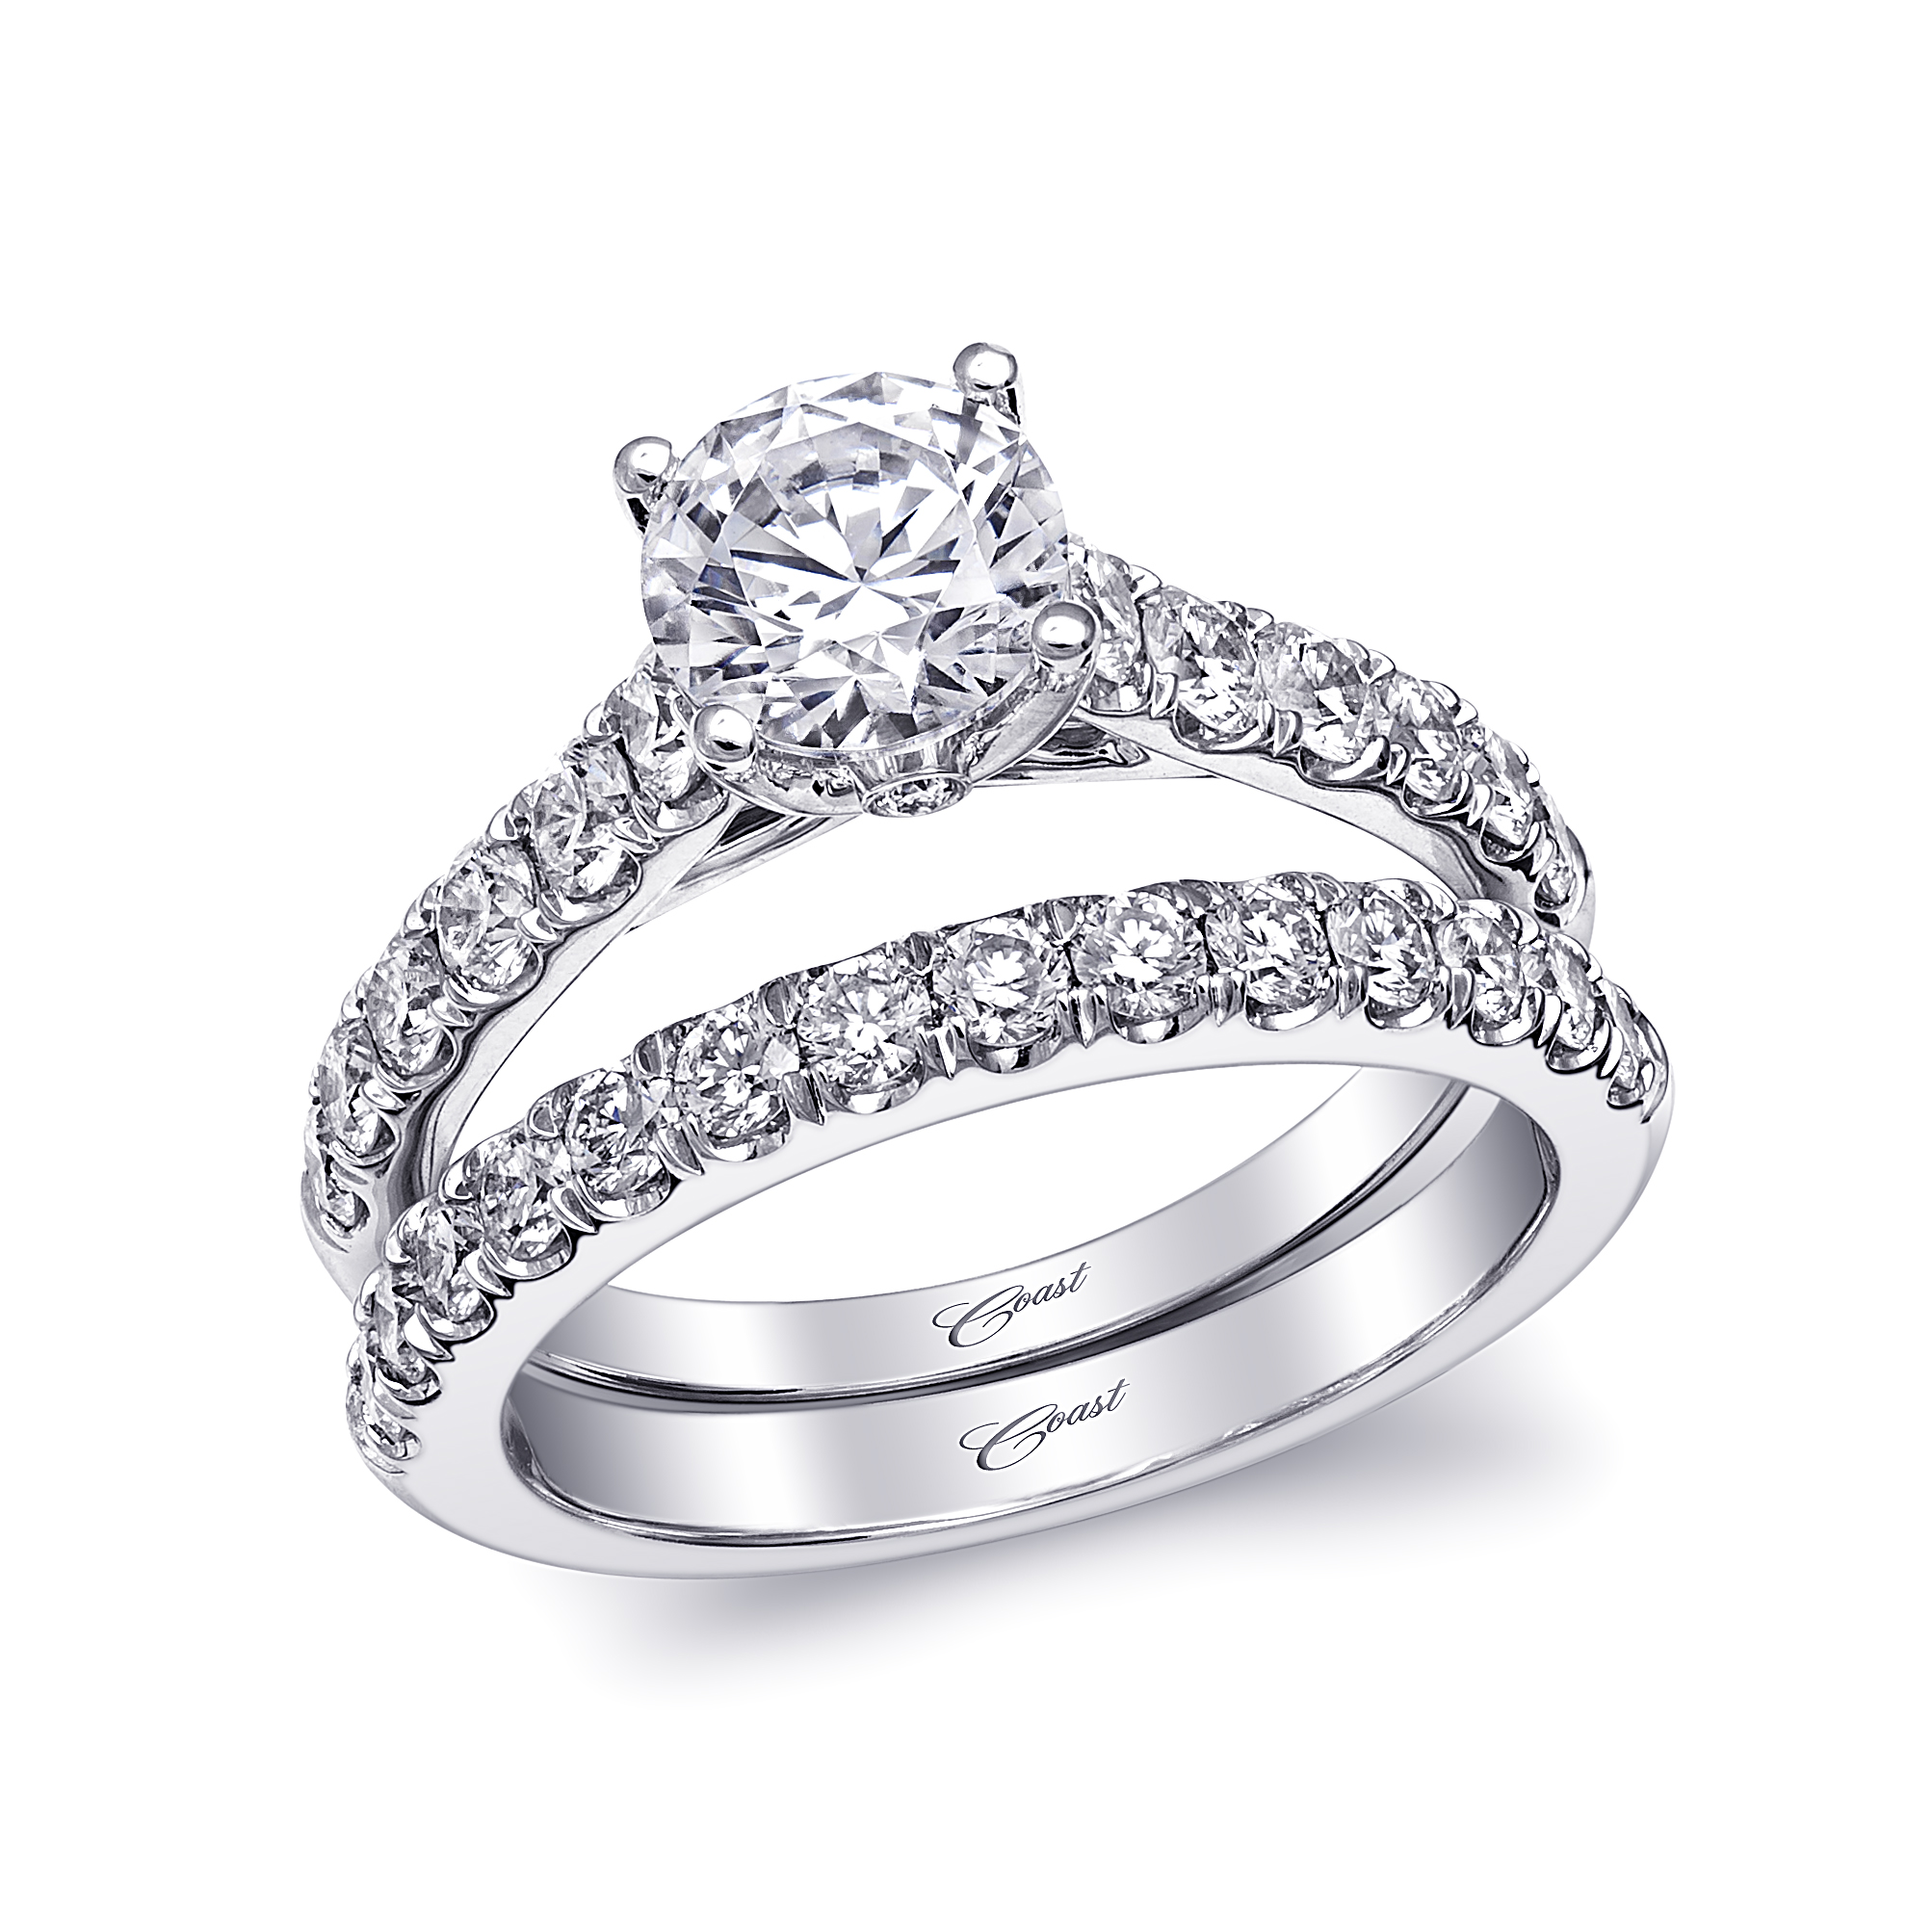 coast diamond featured retailer griner jewelry in moultrie georgia wedding ring stores LC WC